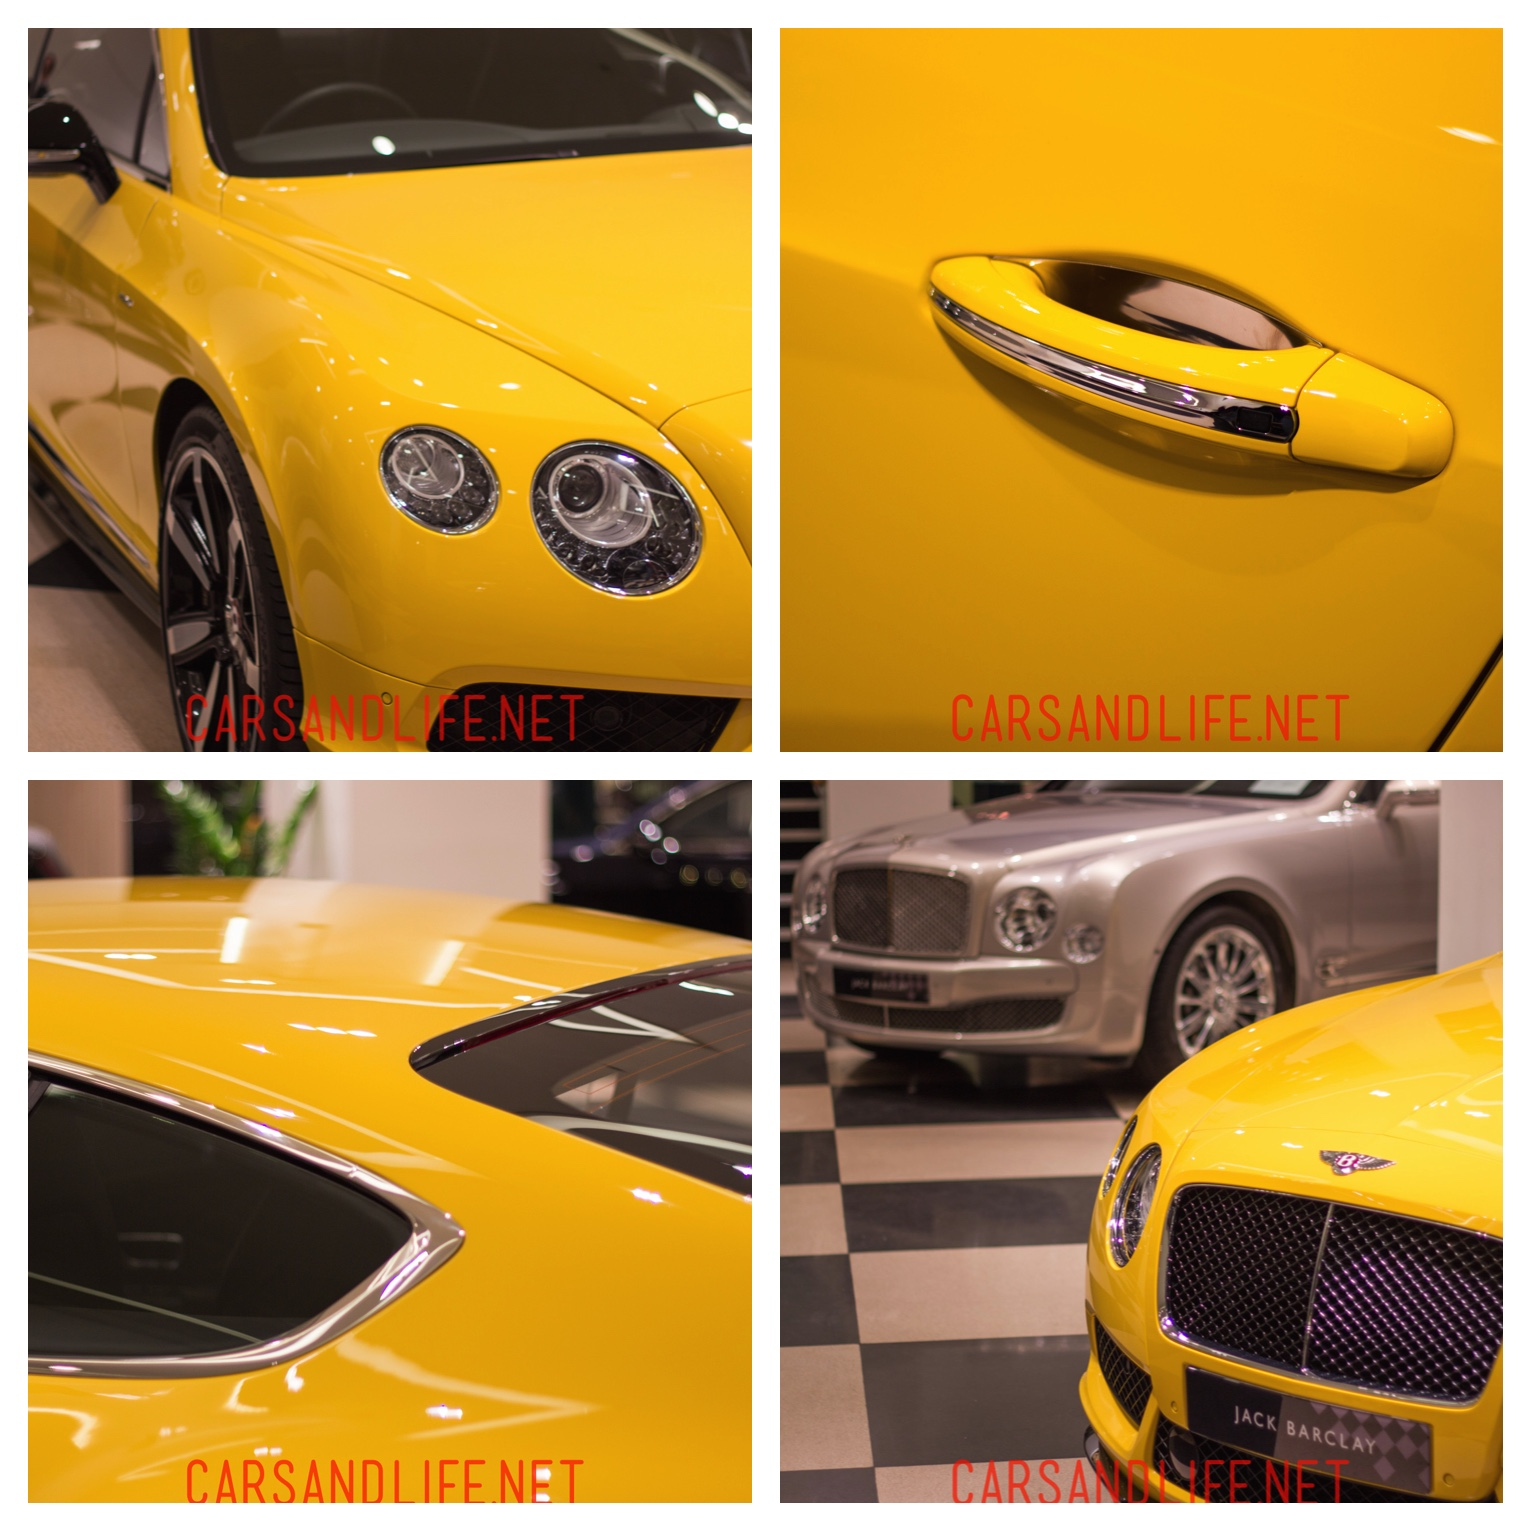 Bentley Continental GT V8 S | Top Gear | Canon 50mm f 1.8